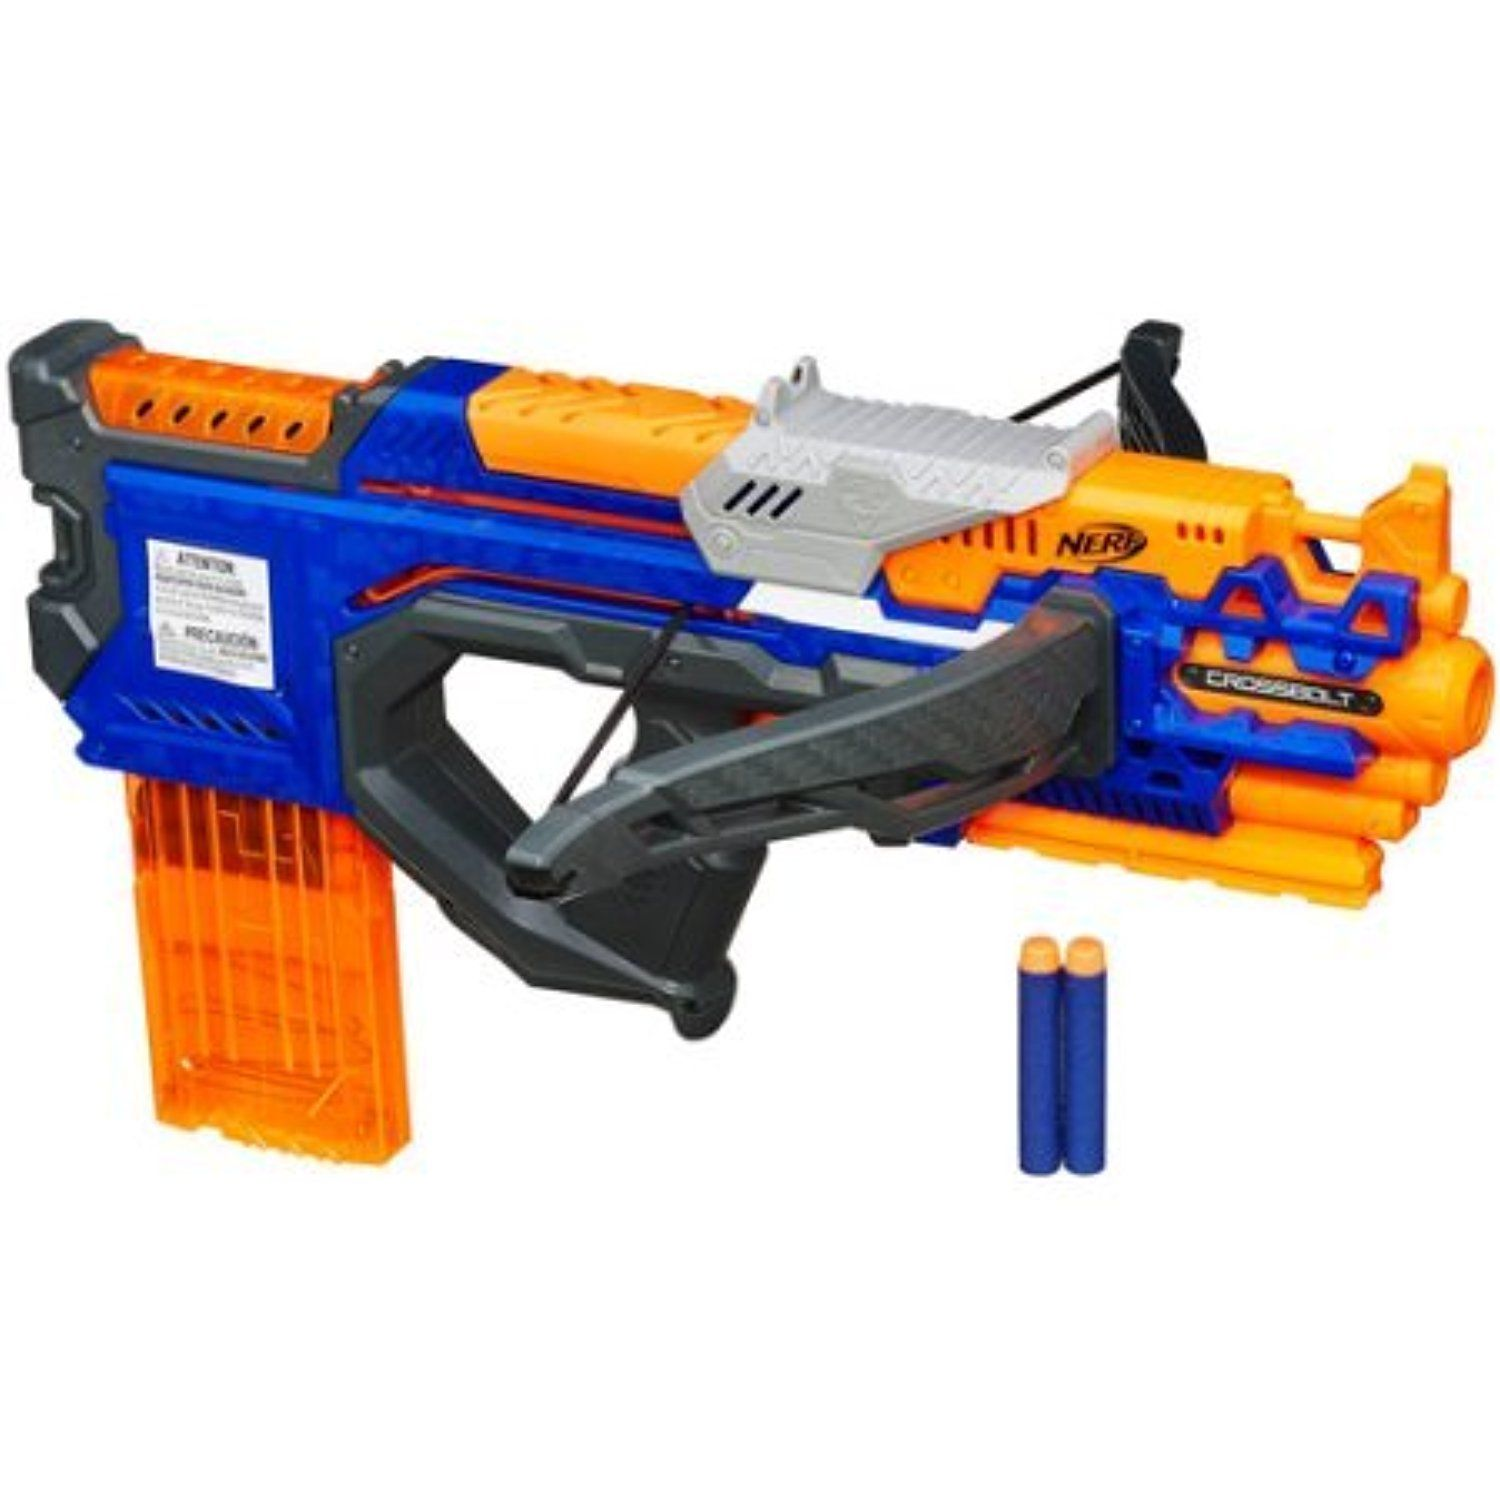 Nerf N Strike Elite CrossBolt Blaster Real crossbow action Awesome products selected by